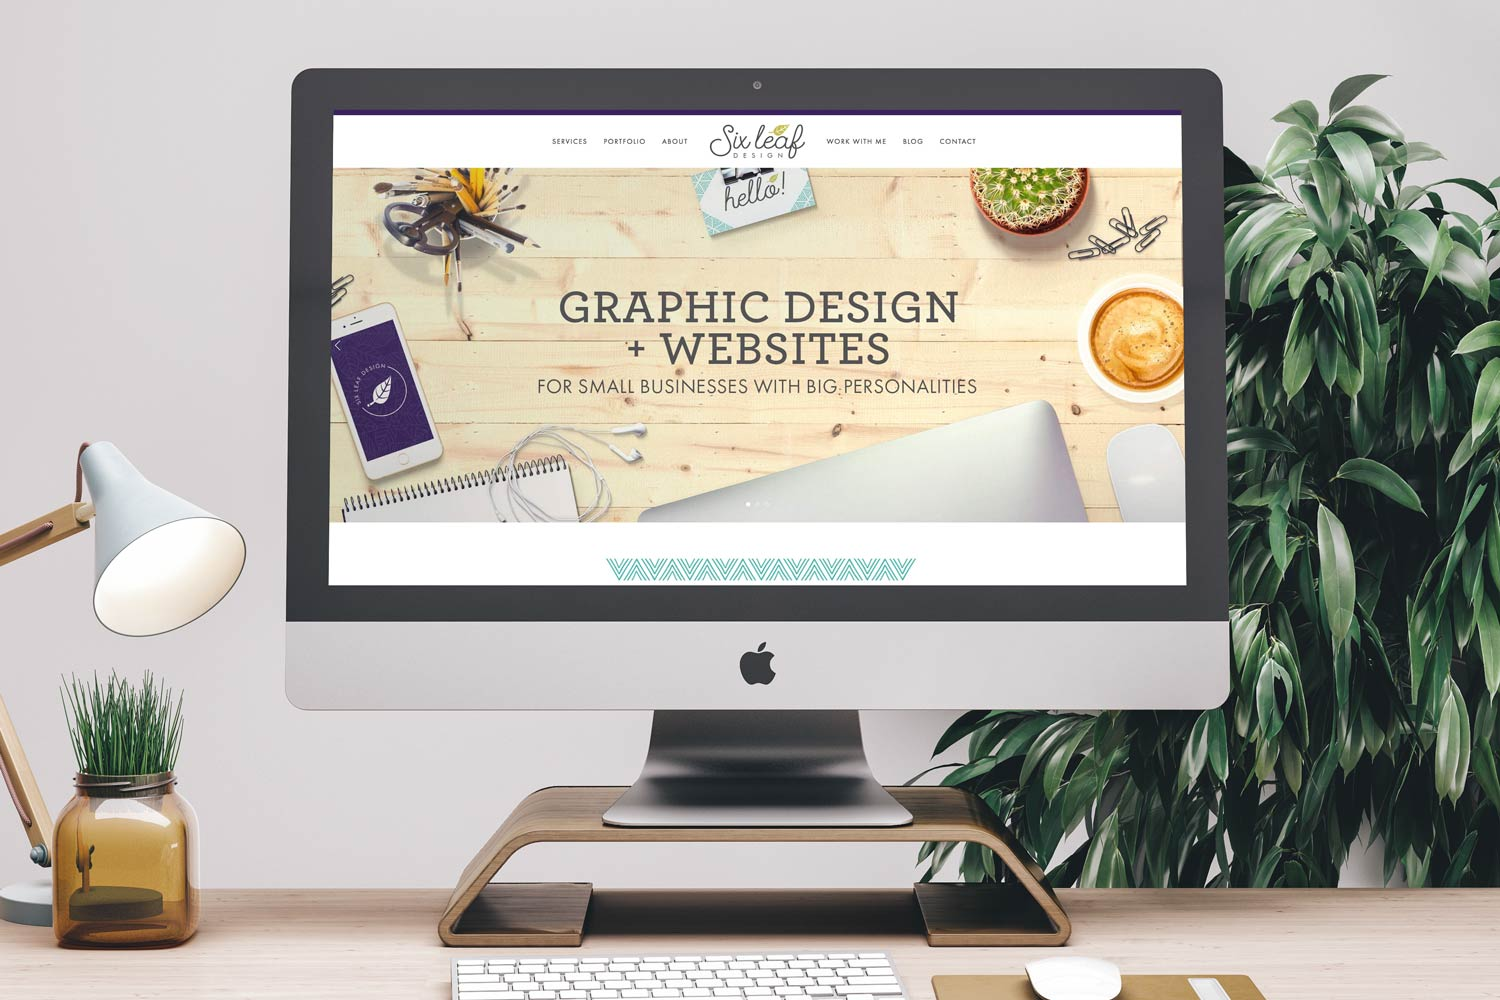 "The very first banner on my homepage says front and center ""Graphic Design + Websites for Small Businesses with Big Personalities"" - right away you know what I do and who I do it for."